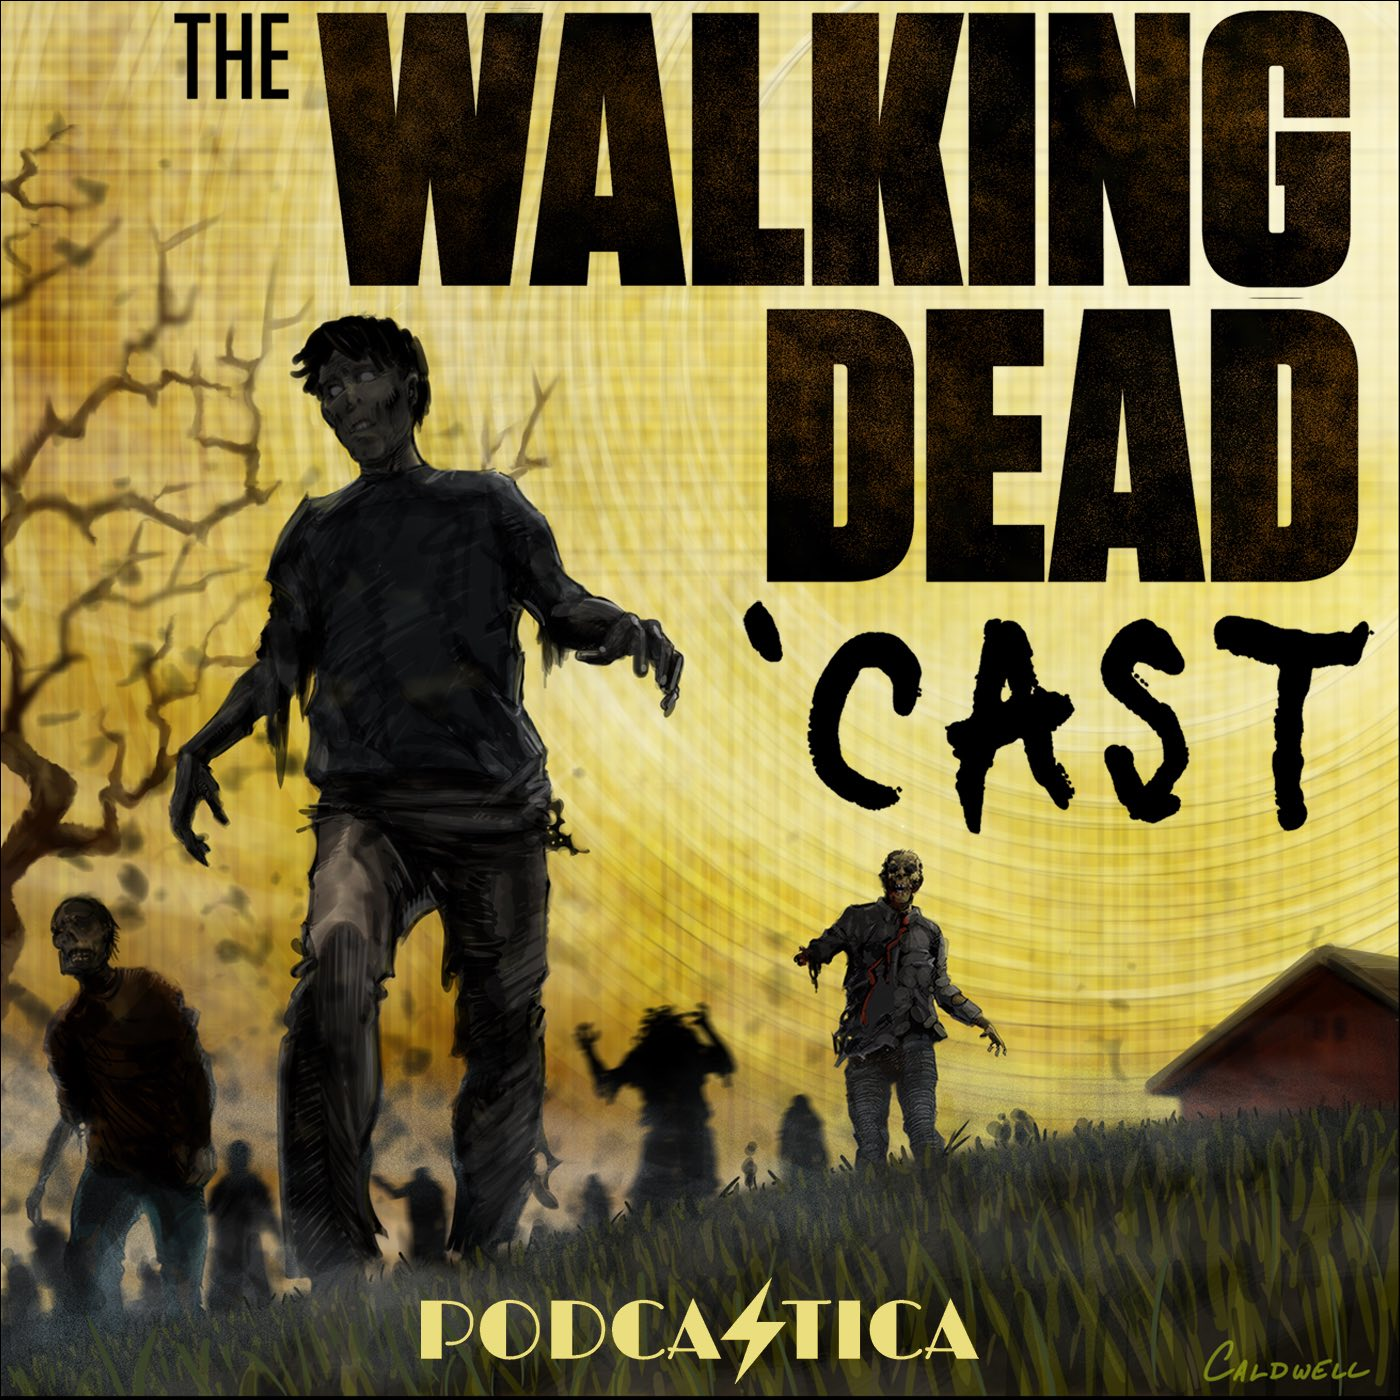 351: Melissa Hutchison (Clementine) from The Walking Dead